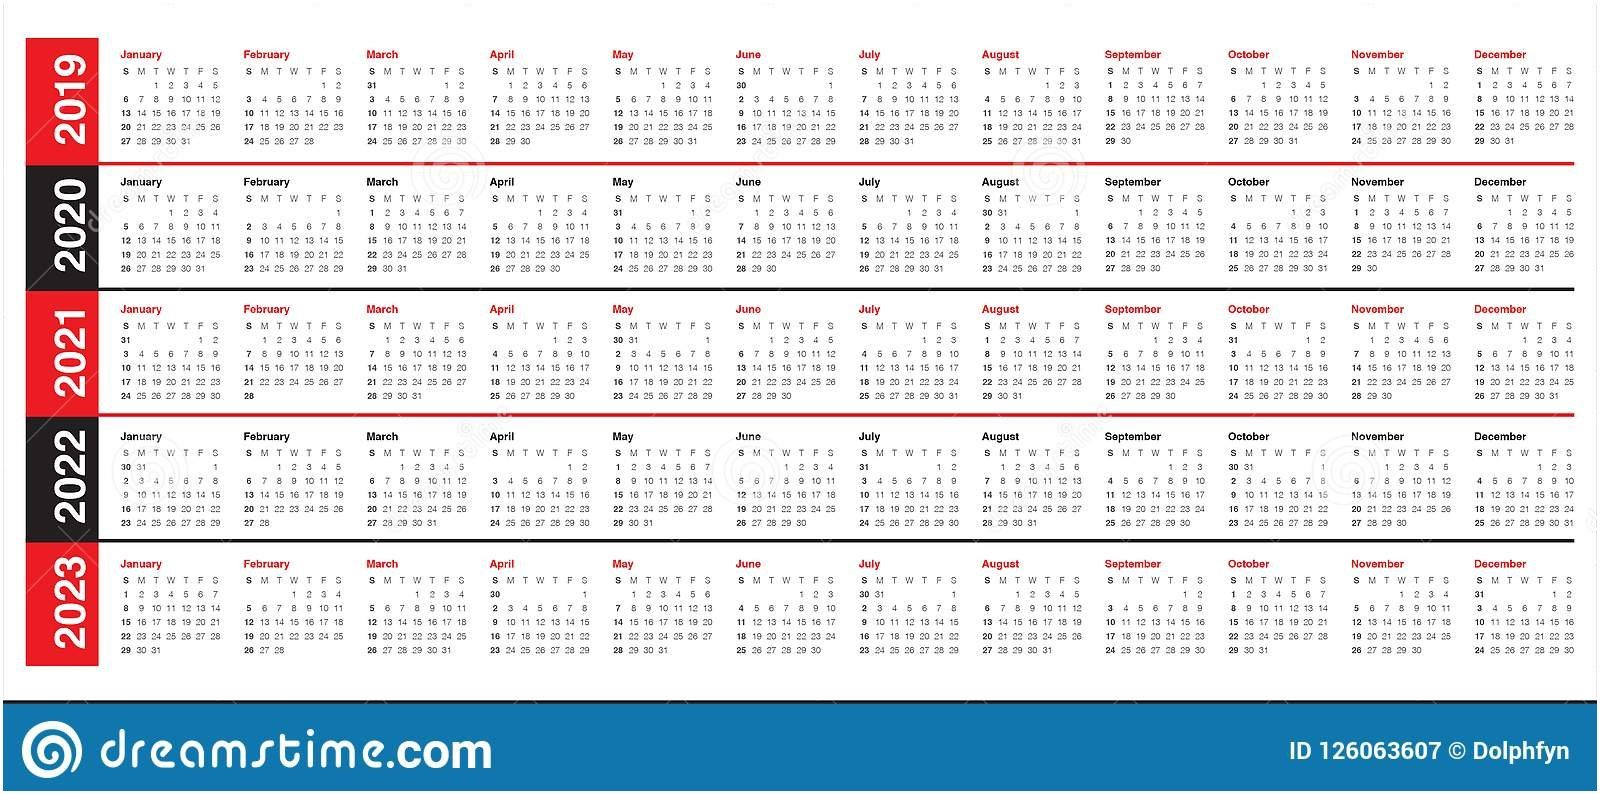 Printable 5 Year Calendar To Download Or Print | Americanwomanmag 5 Year Calendar 2019 To 2023 Printable